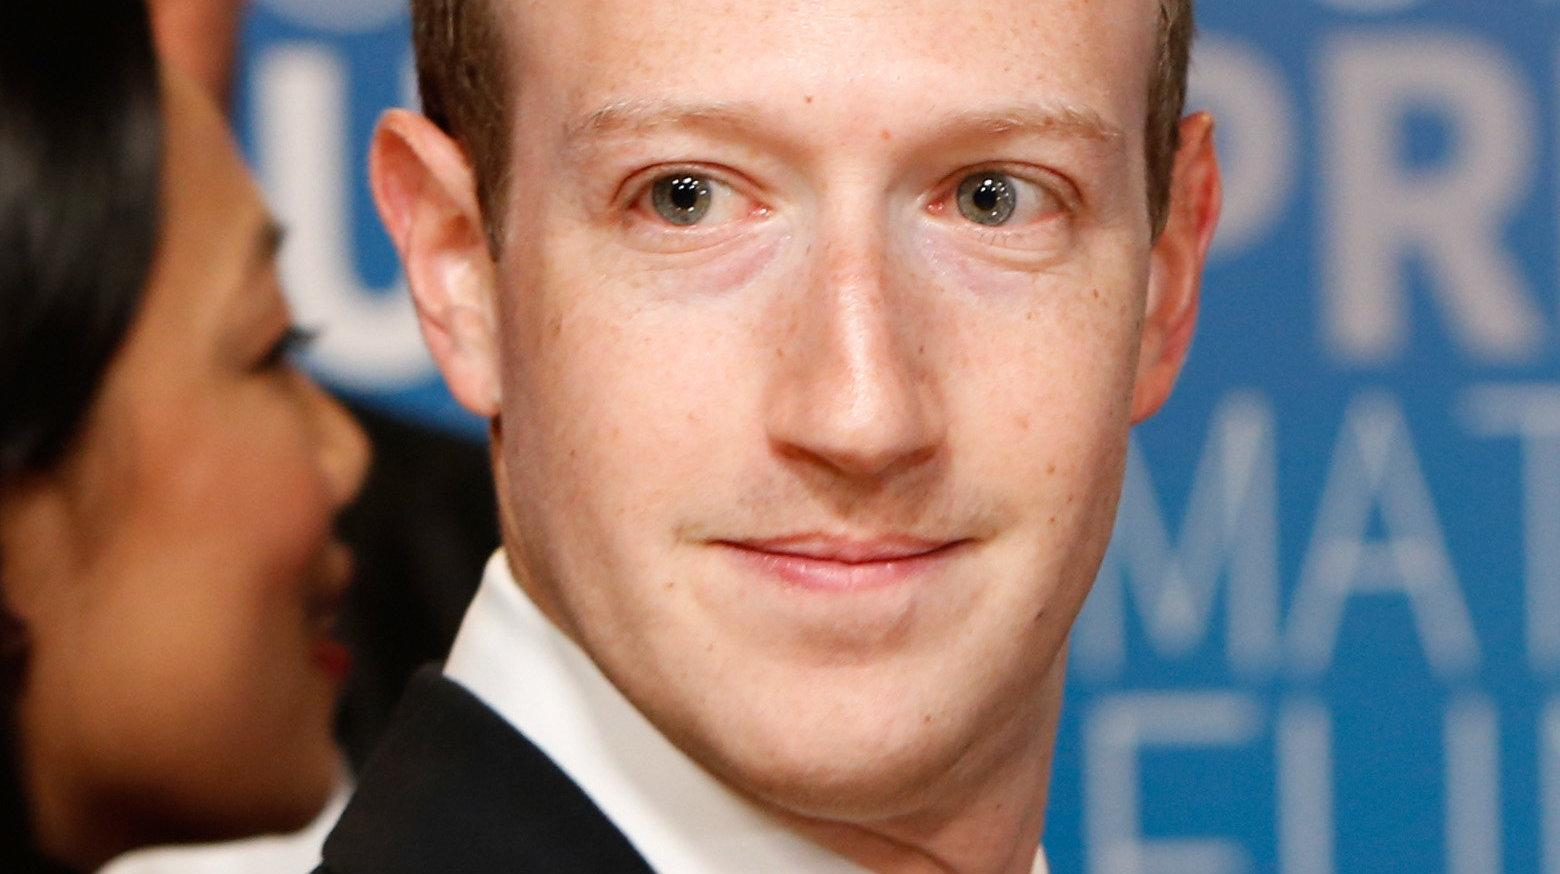 Feds Charge Facebook With Racial Discrimination Over Ad Practices